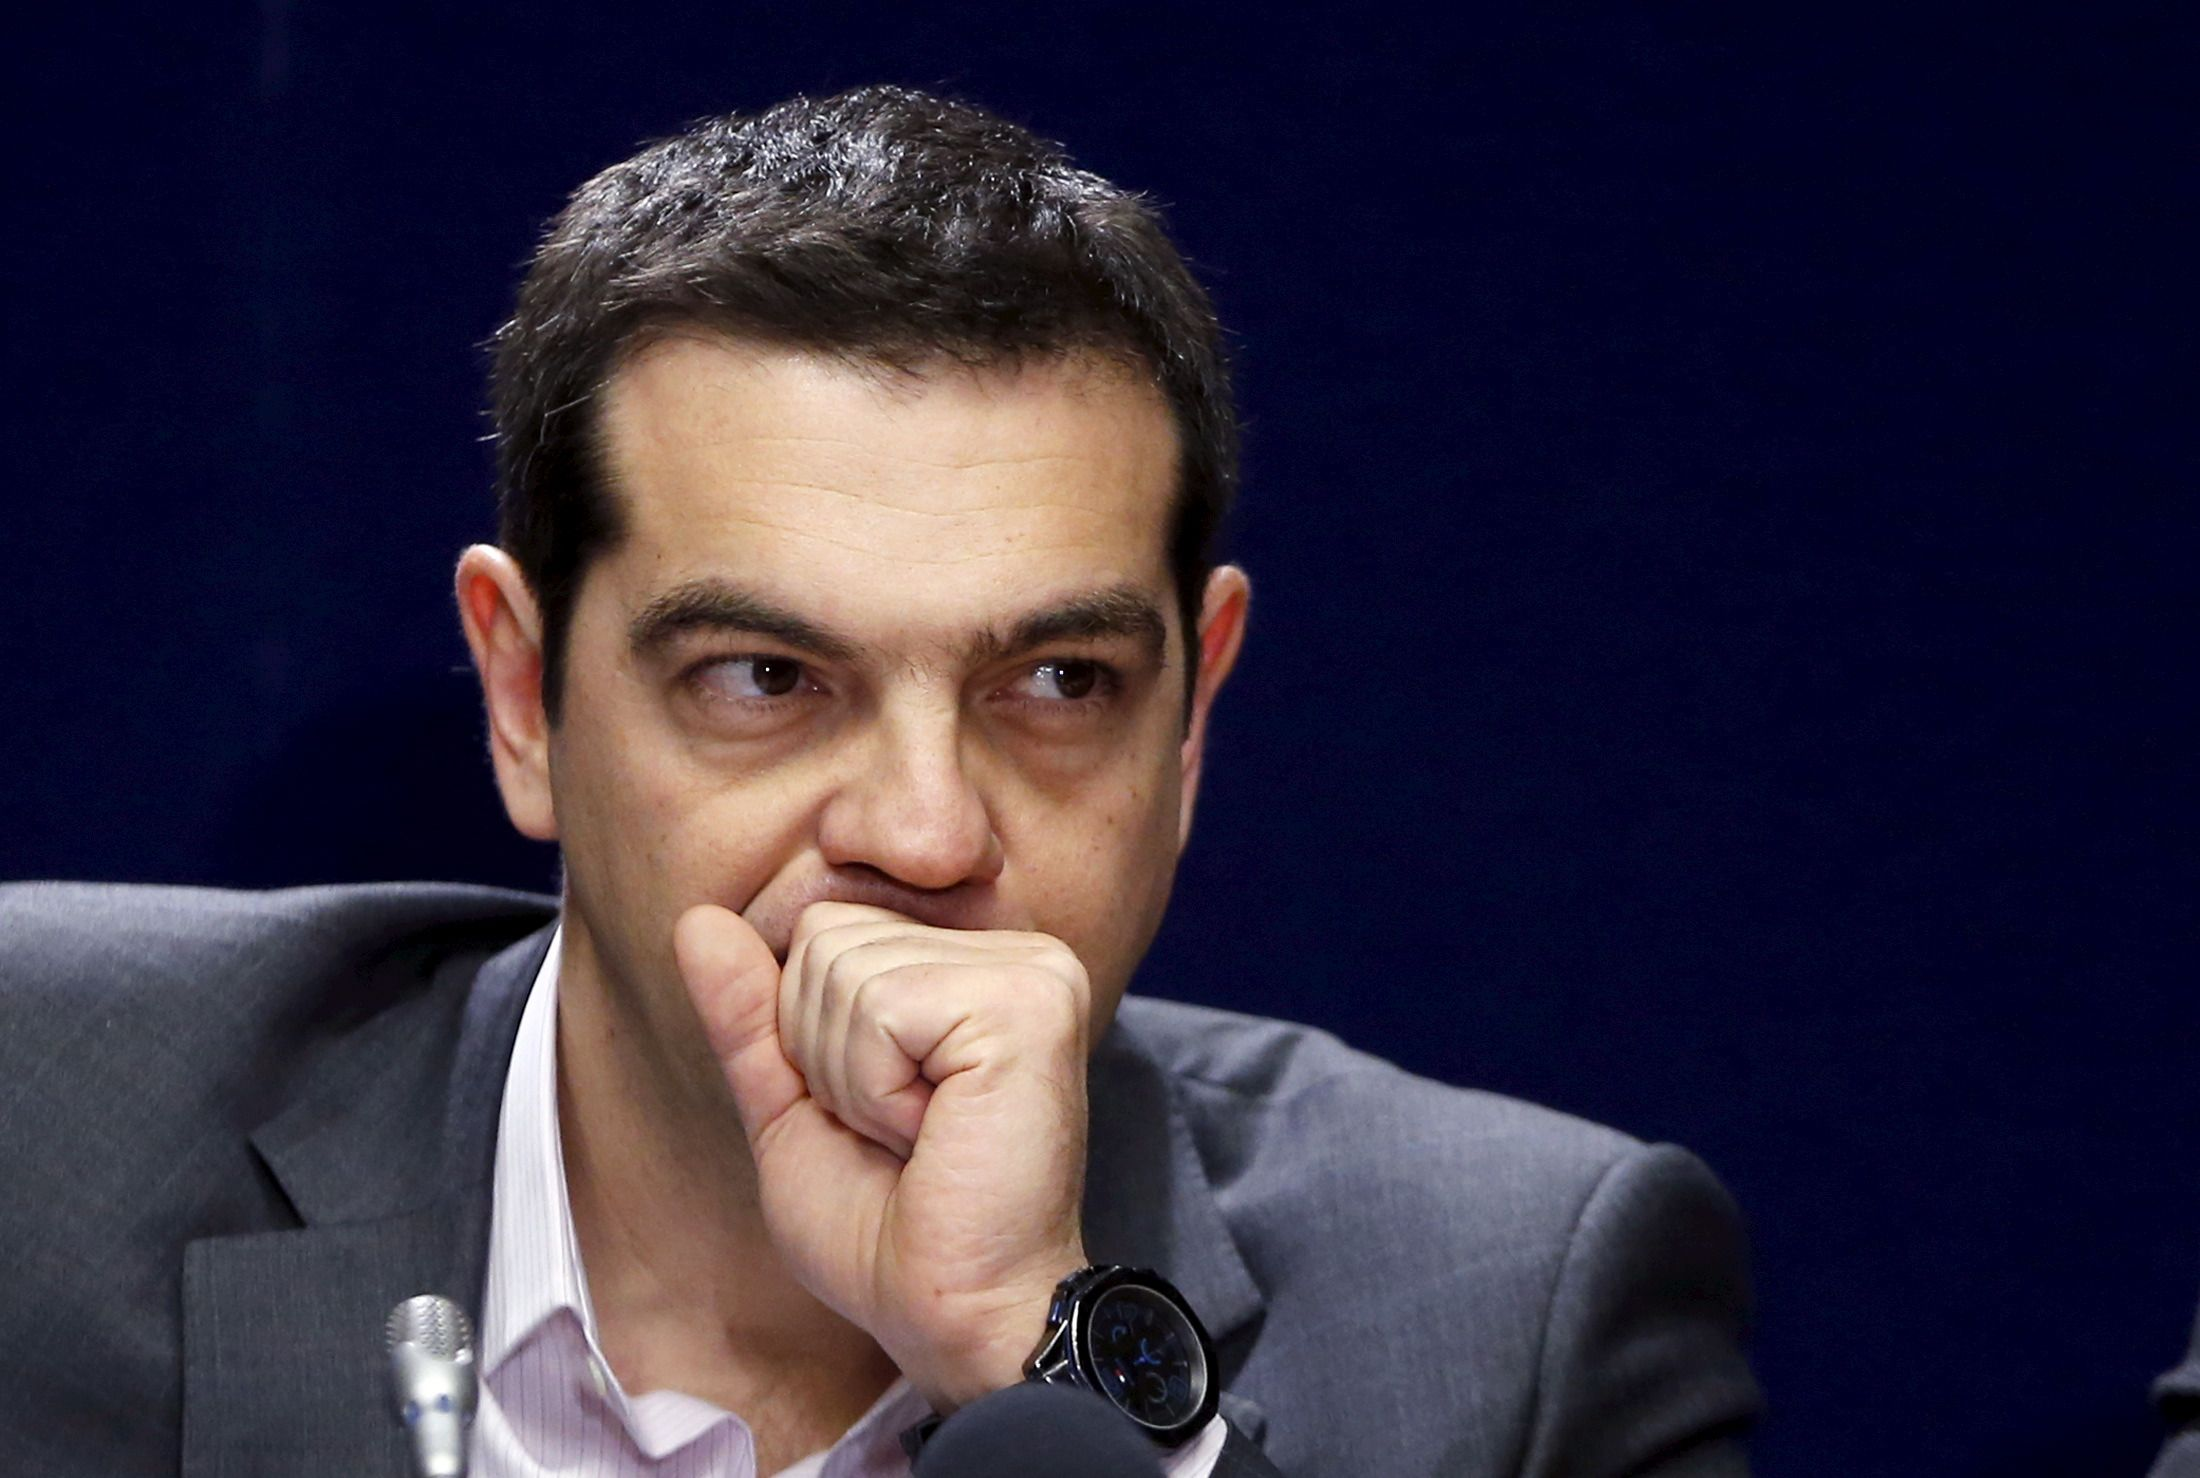 Tsipras and Russia